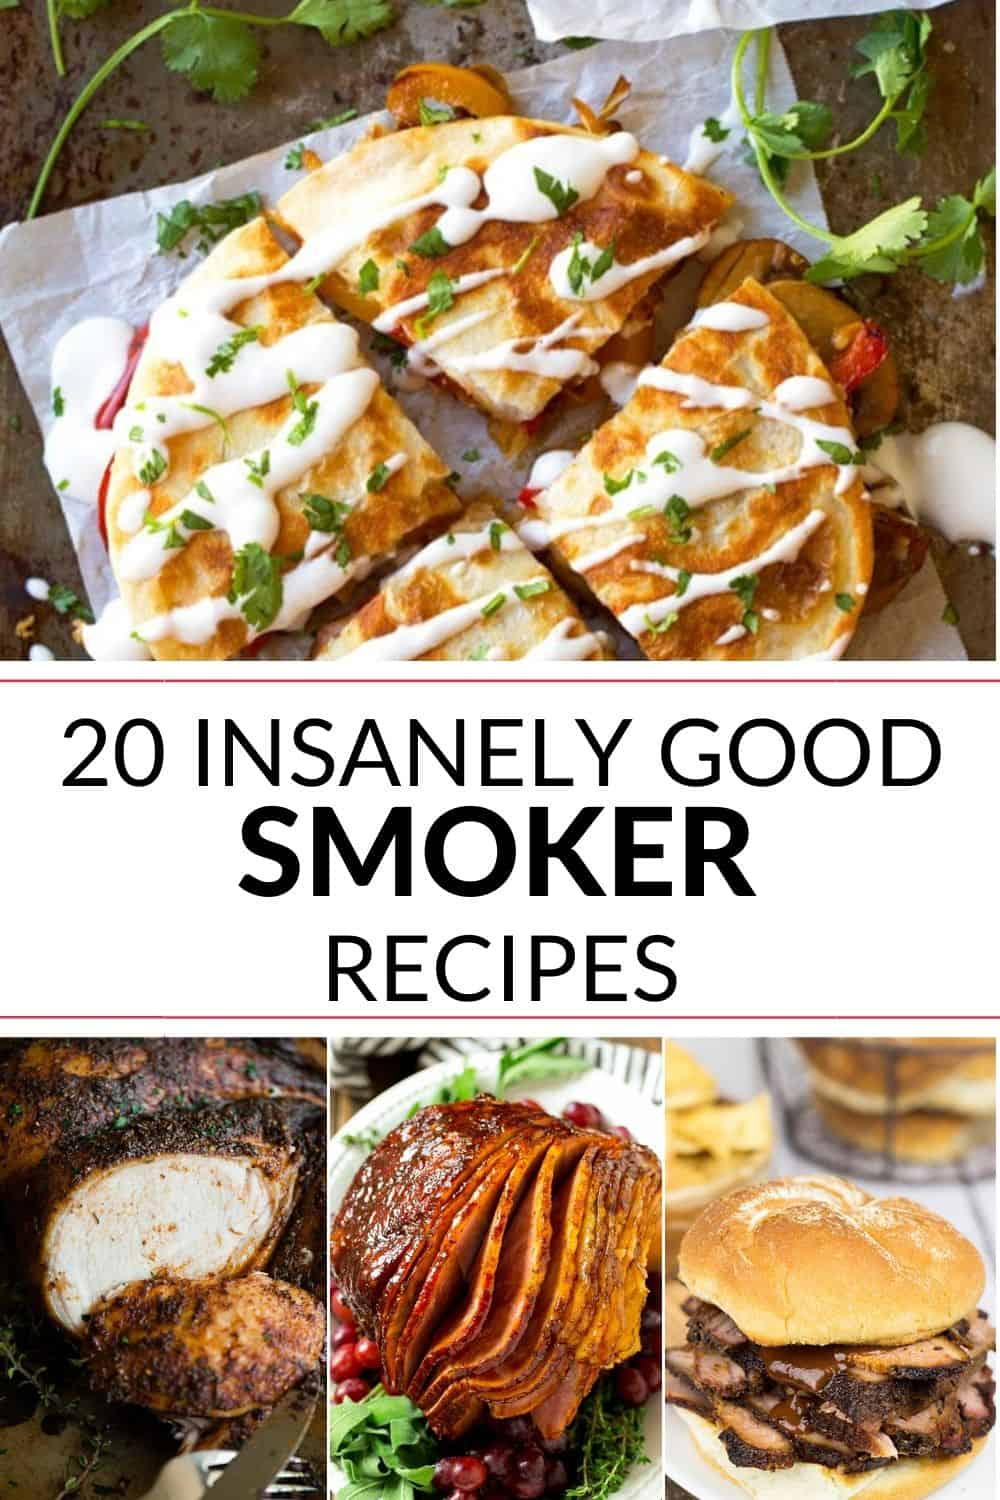 a collection of 20 insanely good smoker recipes